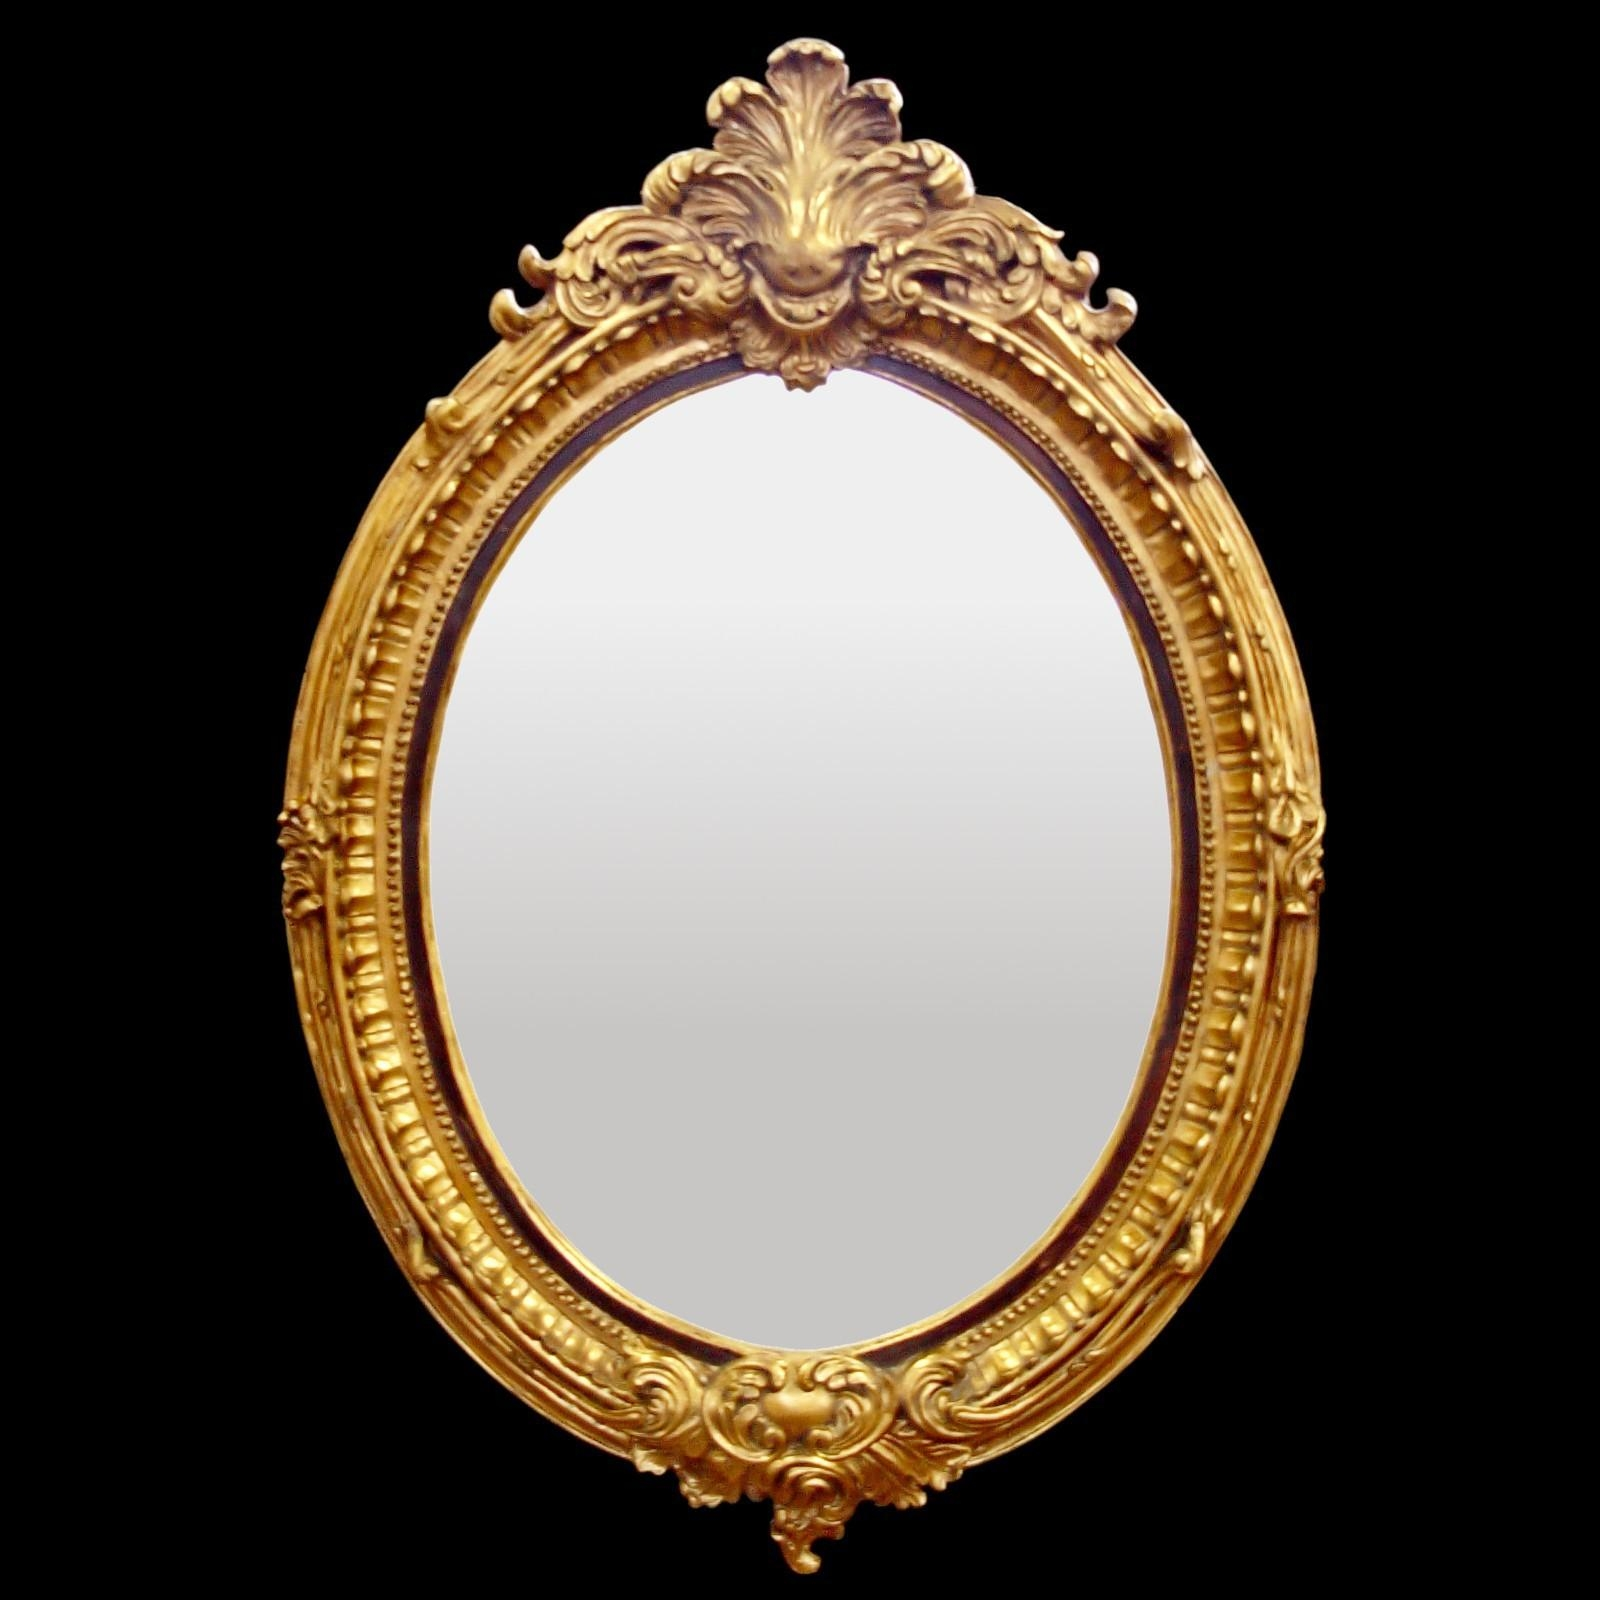 Baroque Hall Mirror Oval Wall Mirror Gold Color Red Leaf Motif Intended For Baroque Mirror Gold (Photo 8 of 20)